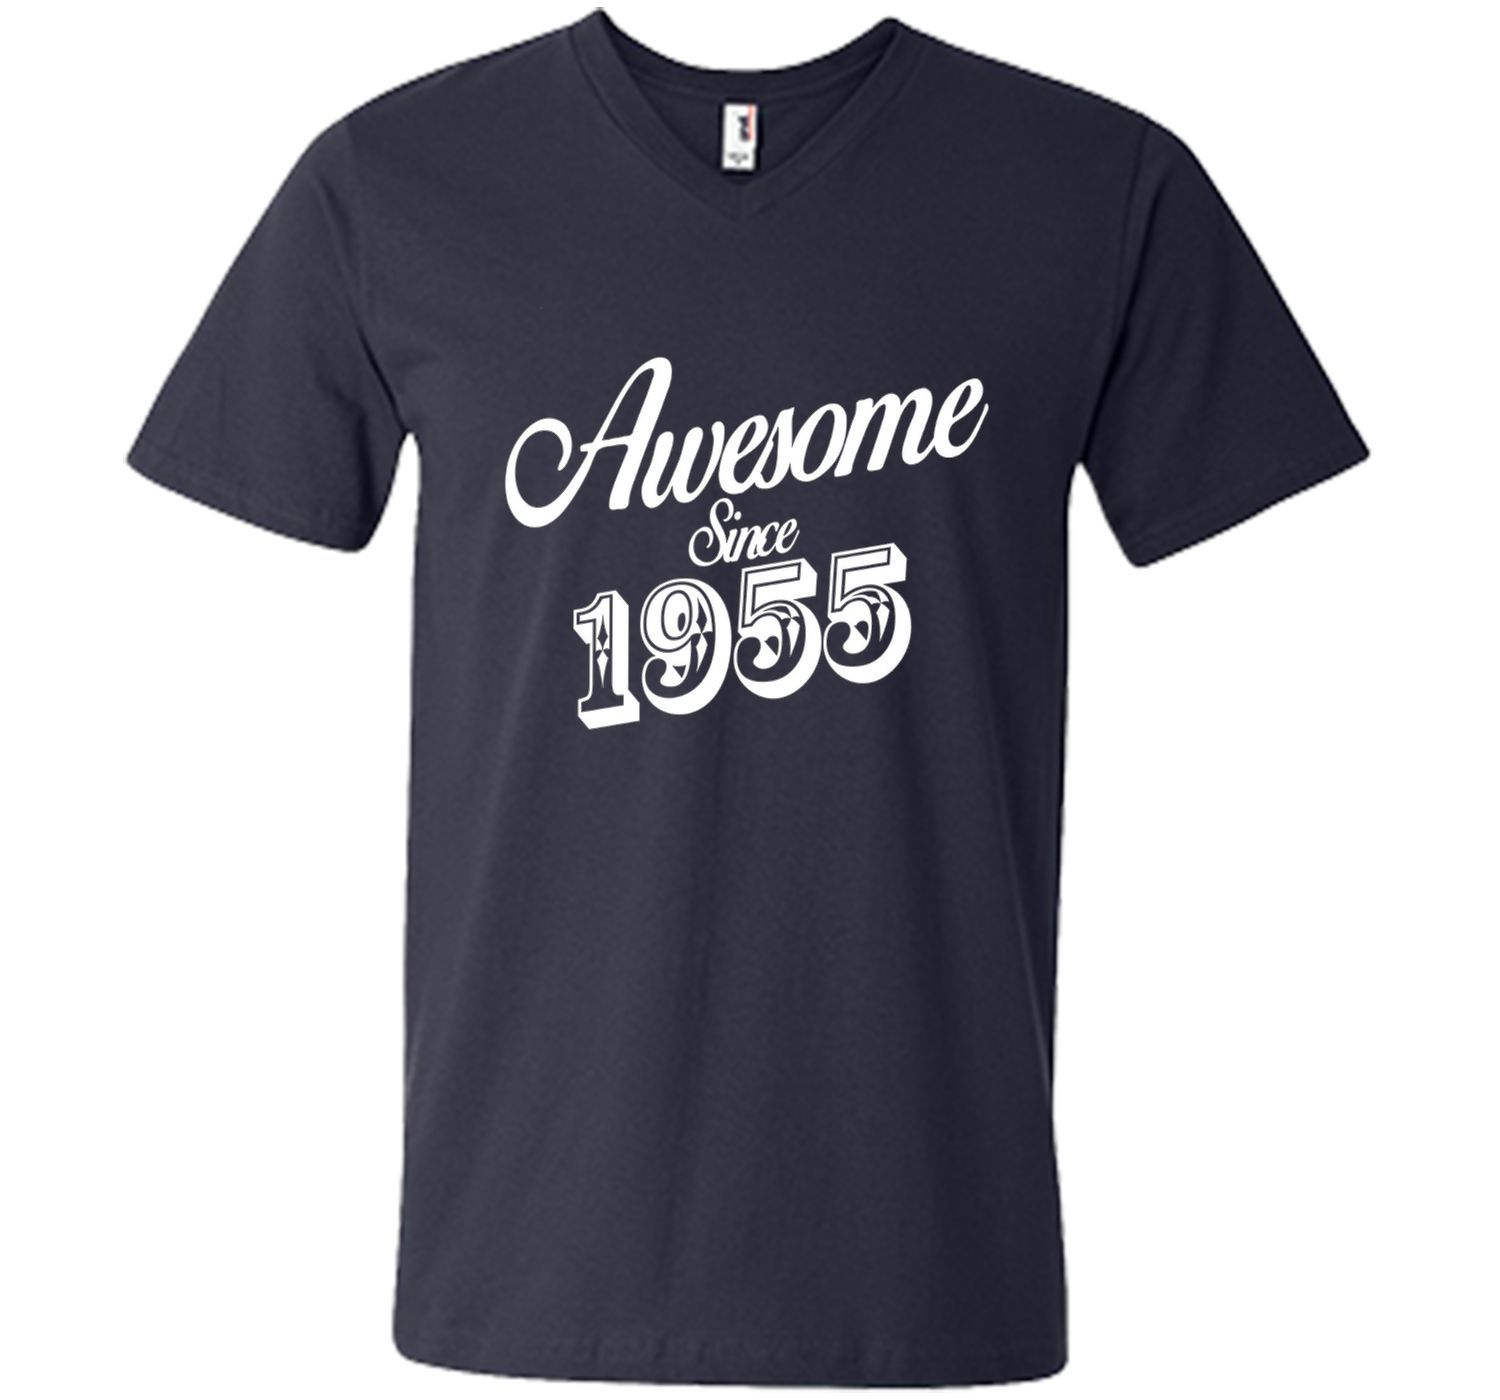 Awesome Since 1955 - 61th Birthday Gift Anniversary T-shirt